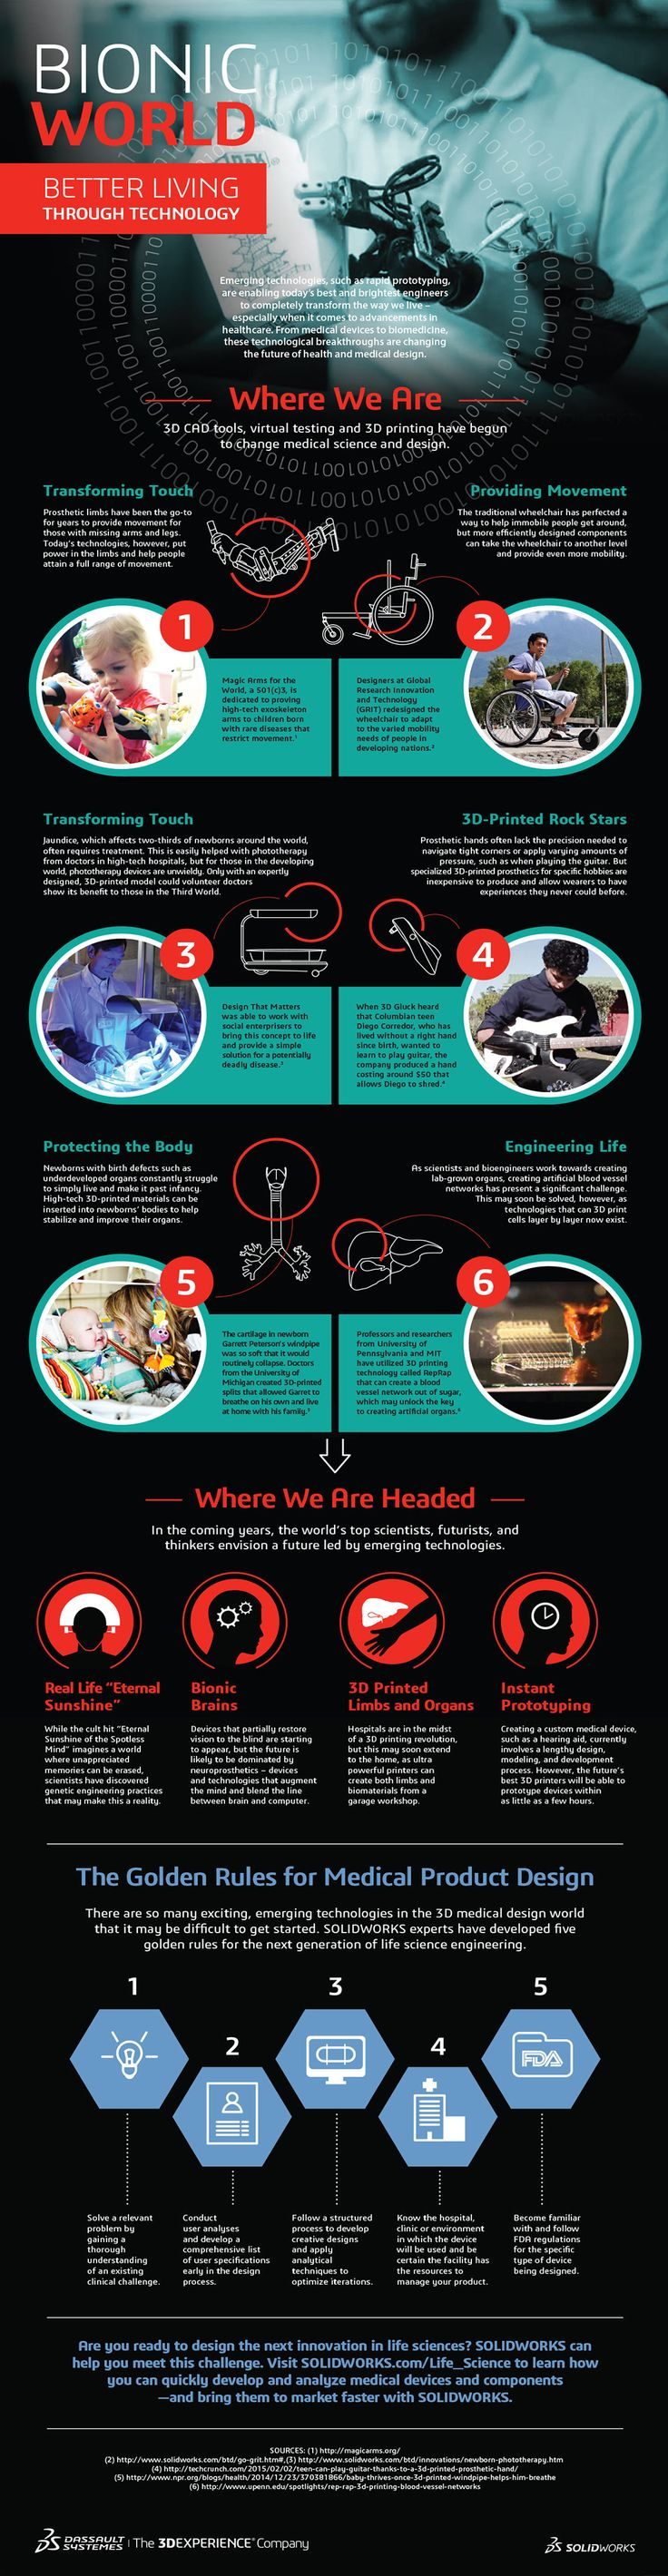 How Bionic Limbs Improve the Lives of Amputees Infographic. Topic: prosthesis , prosthetic, robotics, exoskeleton, bioengineering, wheelchair technology.